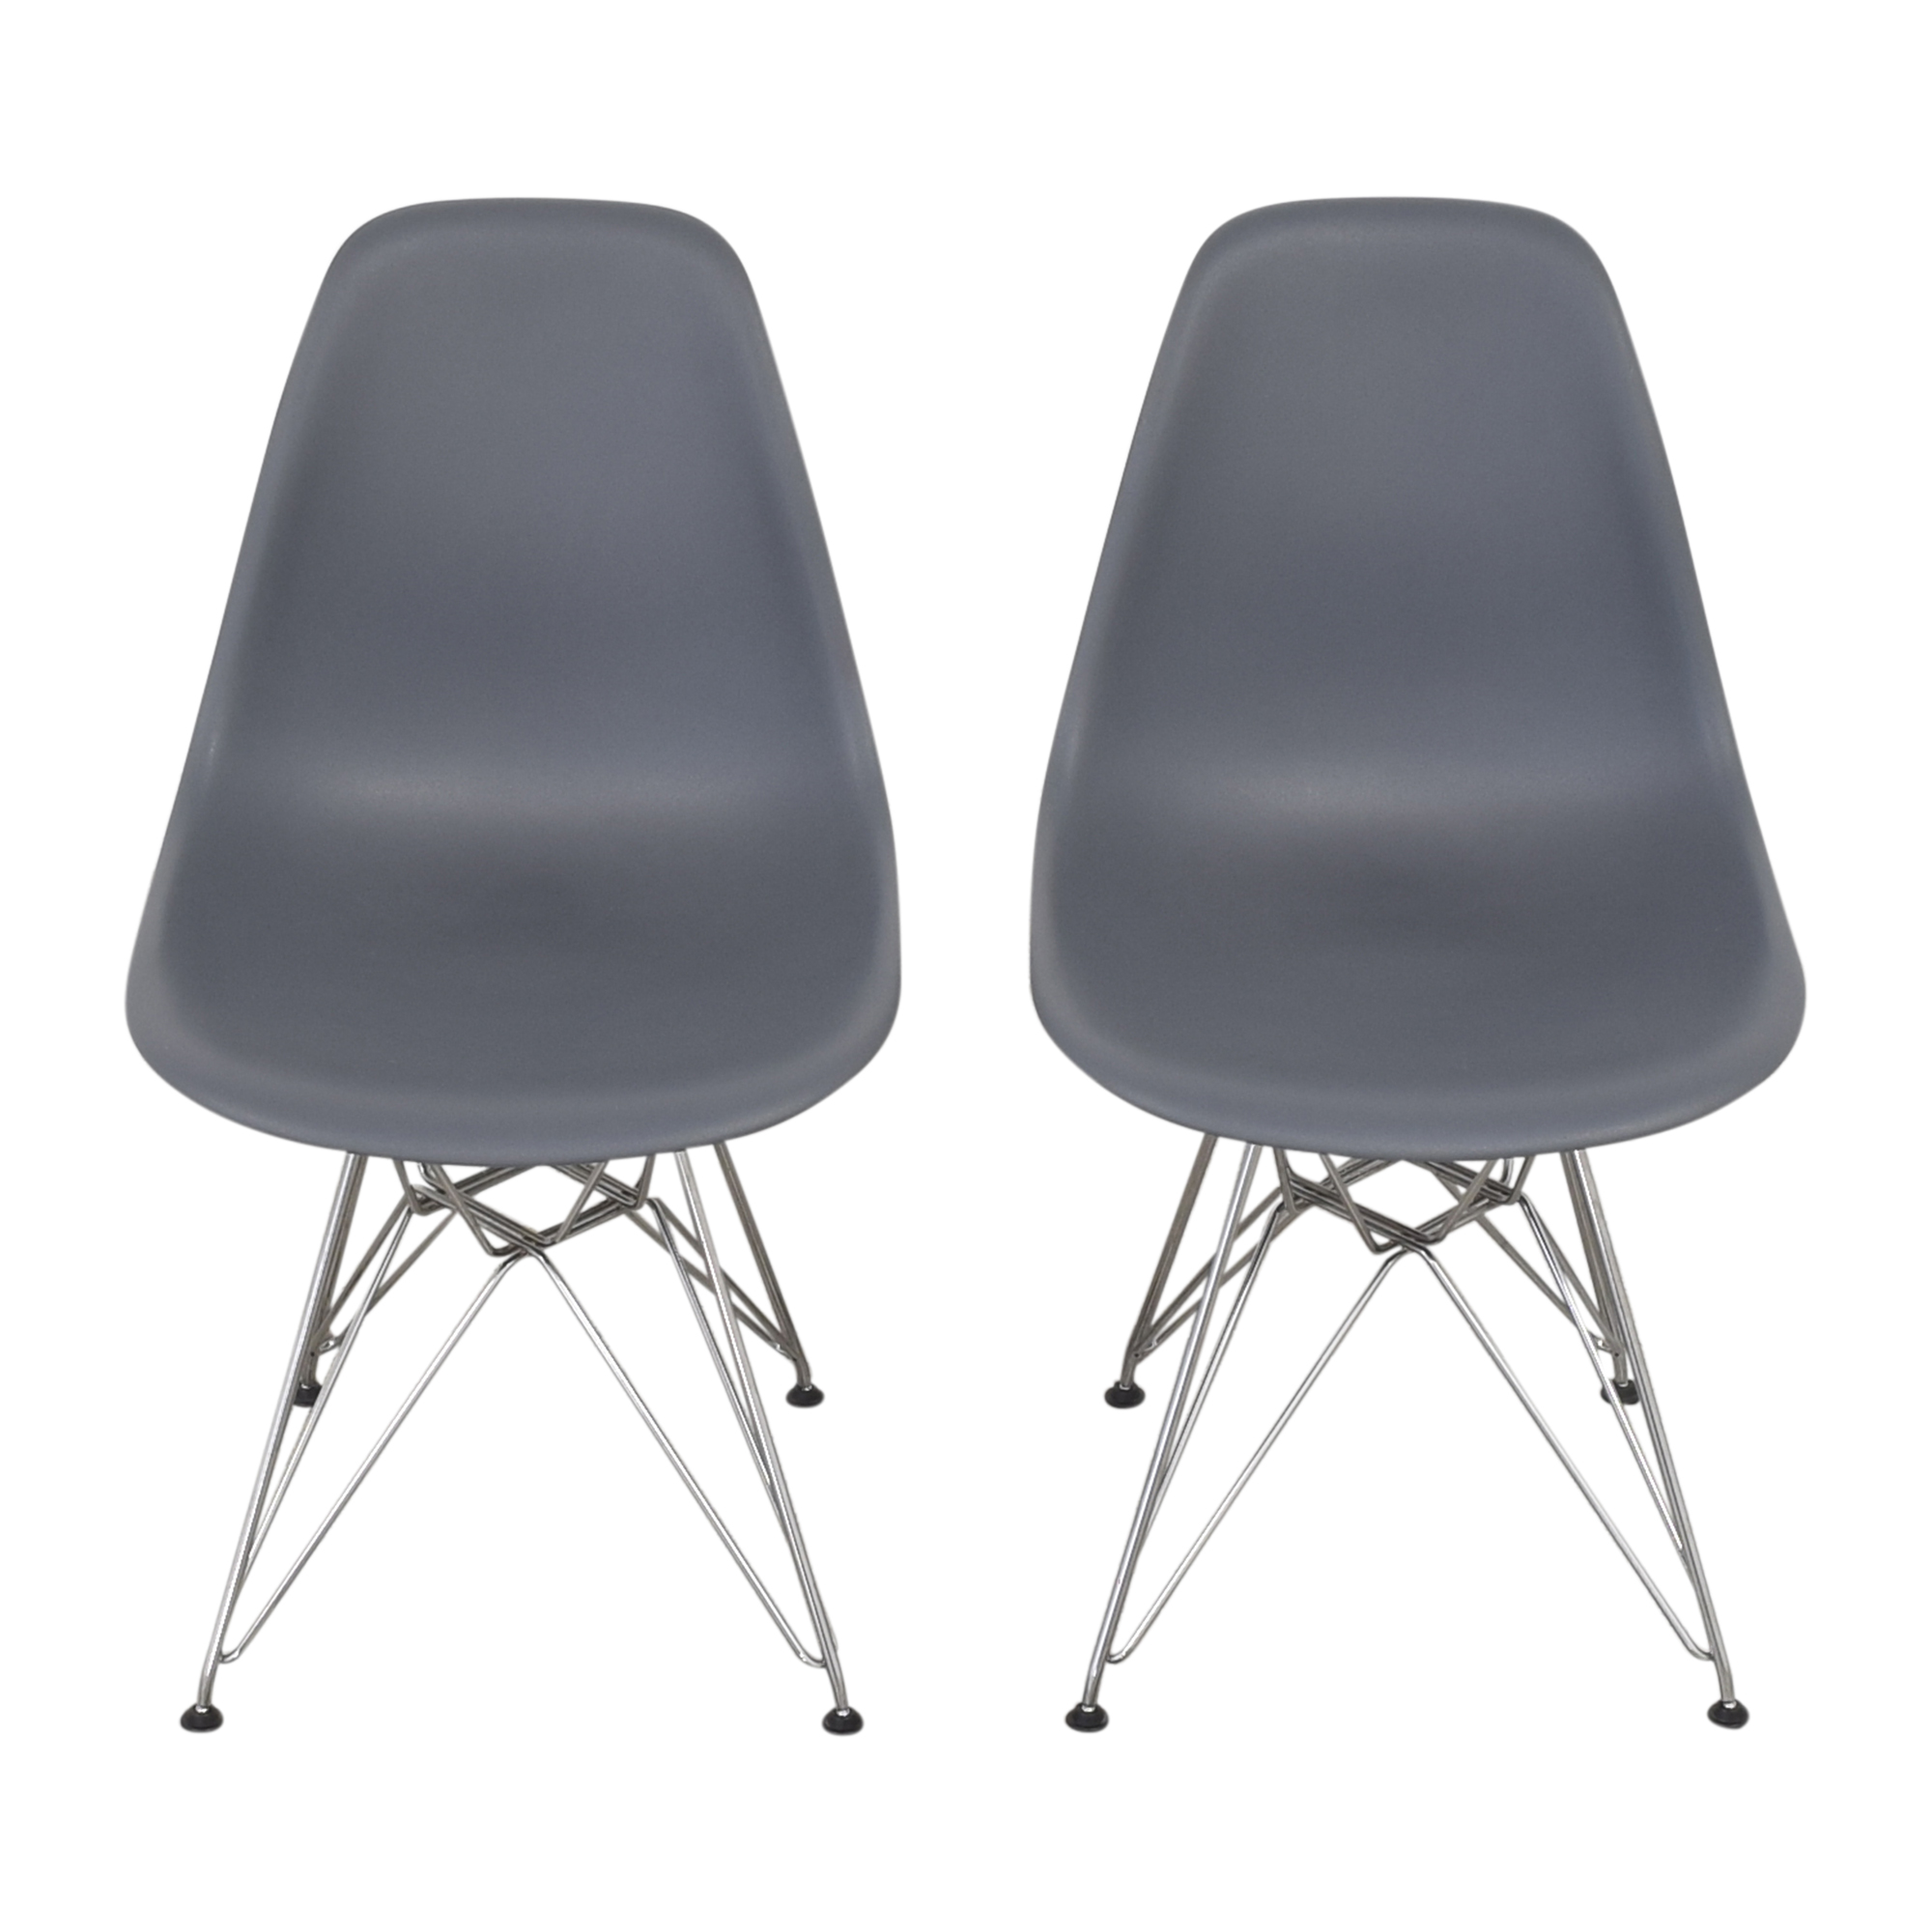 buy Design Within Reach Herman Miller Eames Molded Side Chairs Design Within Reach